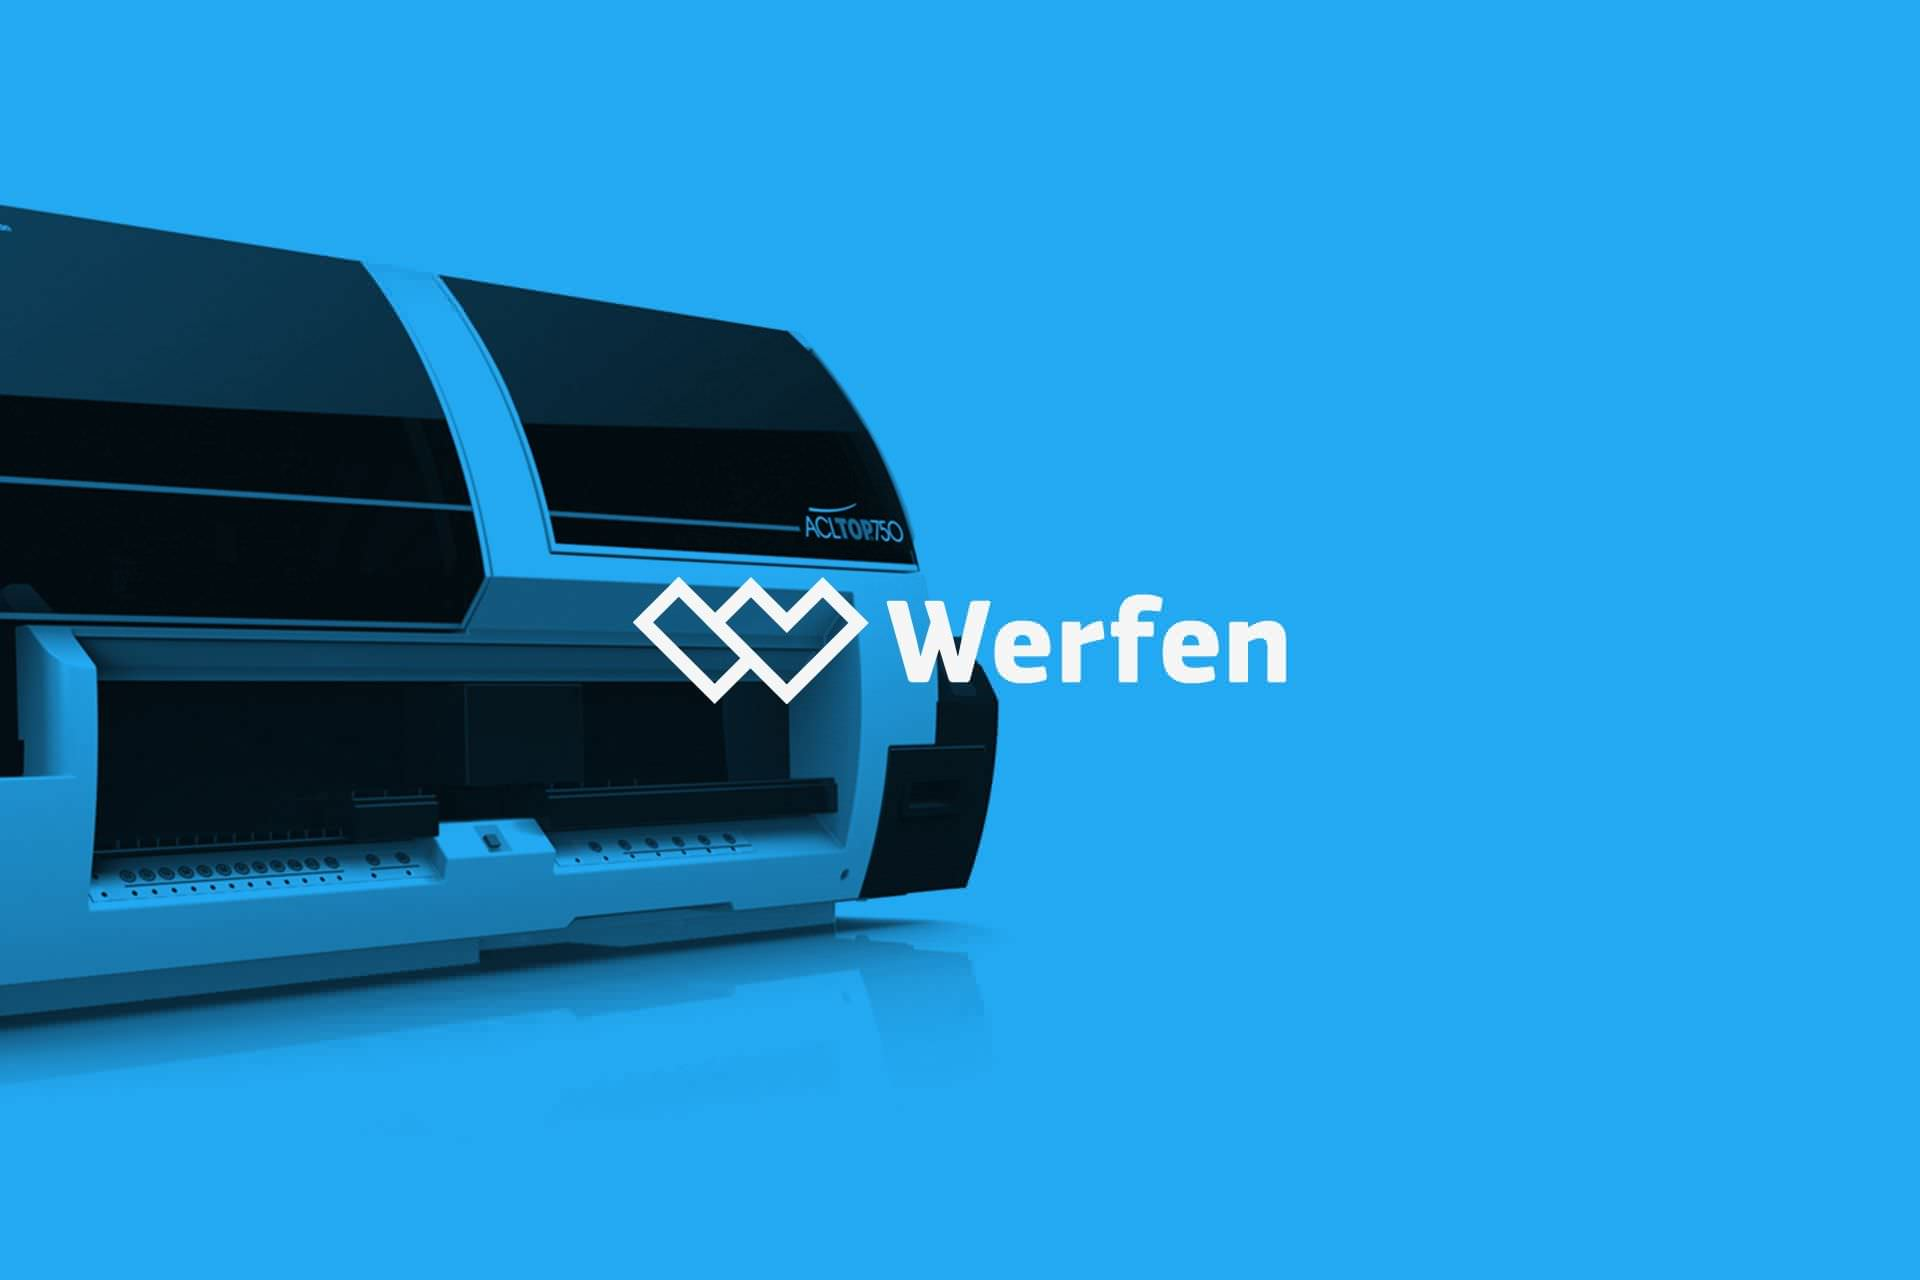 Waka digital agency: user experience design work for Werfen, 2017